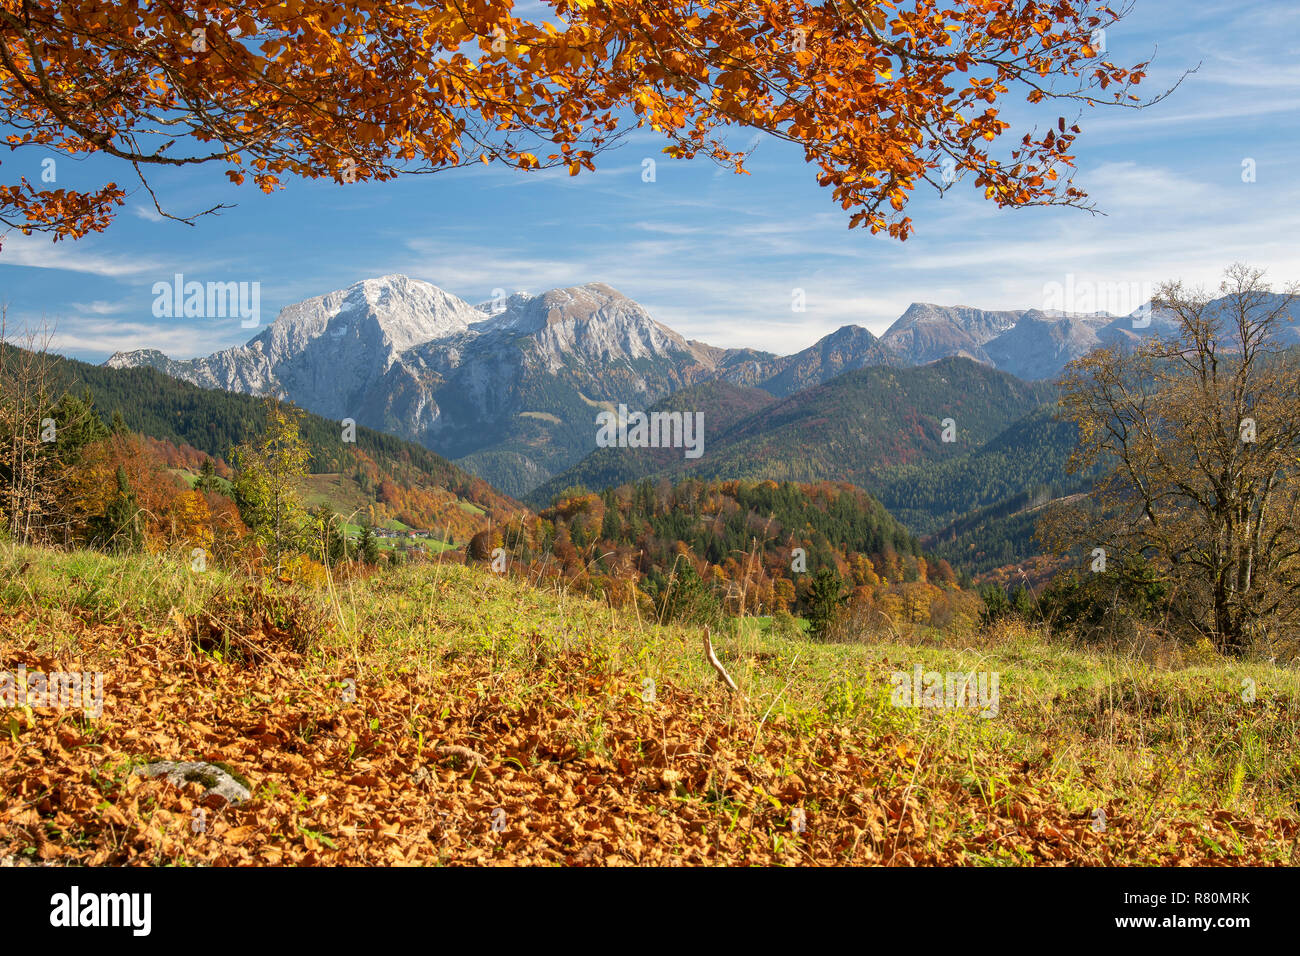 Beech in autumnal alpine landscape with the mountain Hoher Goell in background. Berchtesgadener Land, Bavaria, Germany Stock Photo